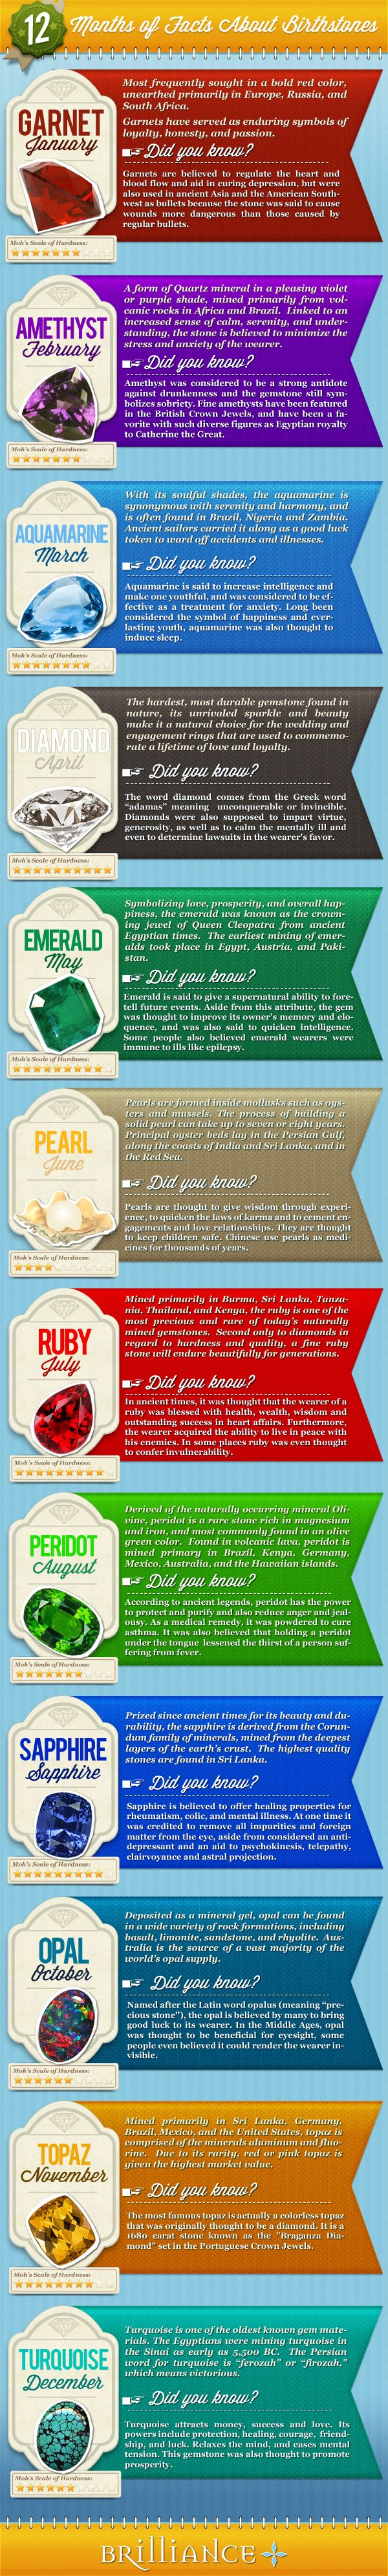 "With Mother's Day right around the corner we thought an infographic guide to each month's birthstone would help. This year, beat out your siblings' gifts (or that cheesy card) and bring your ""A-game"" with Gemstone jewelry for the mothers in your life."